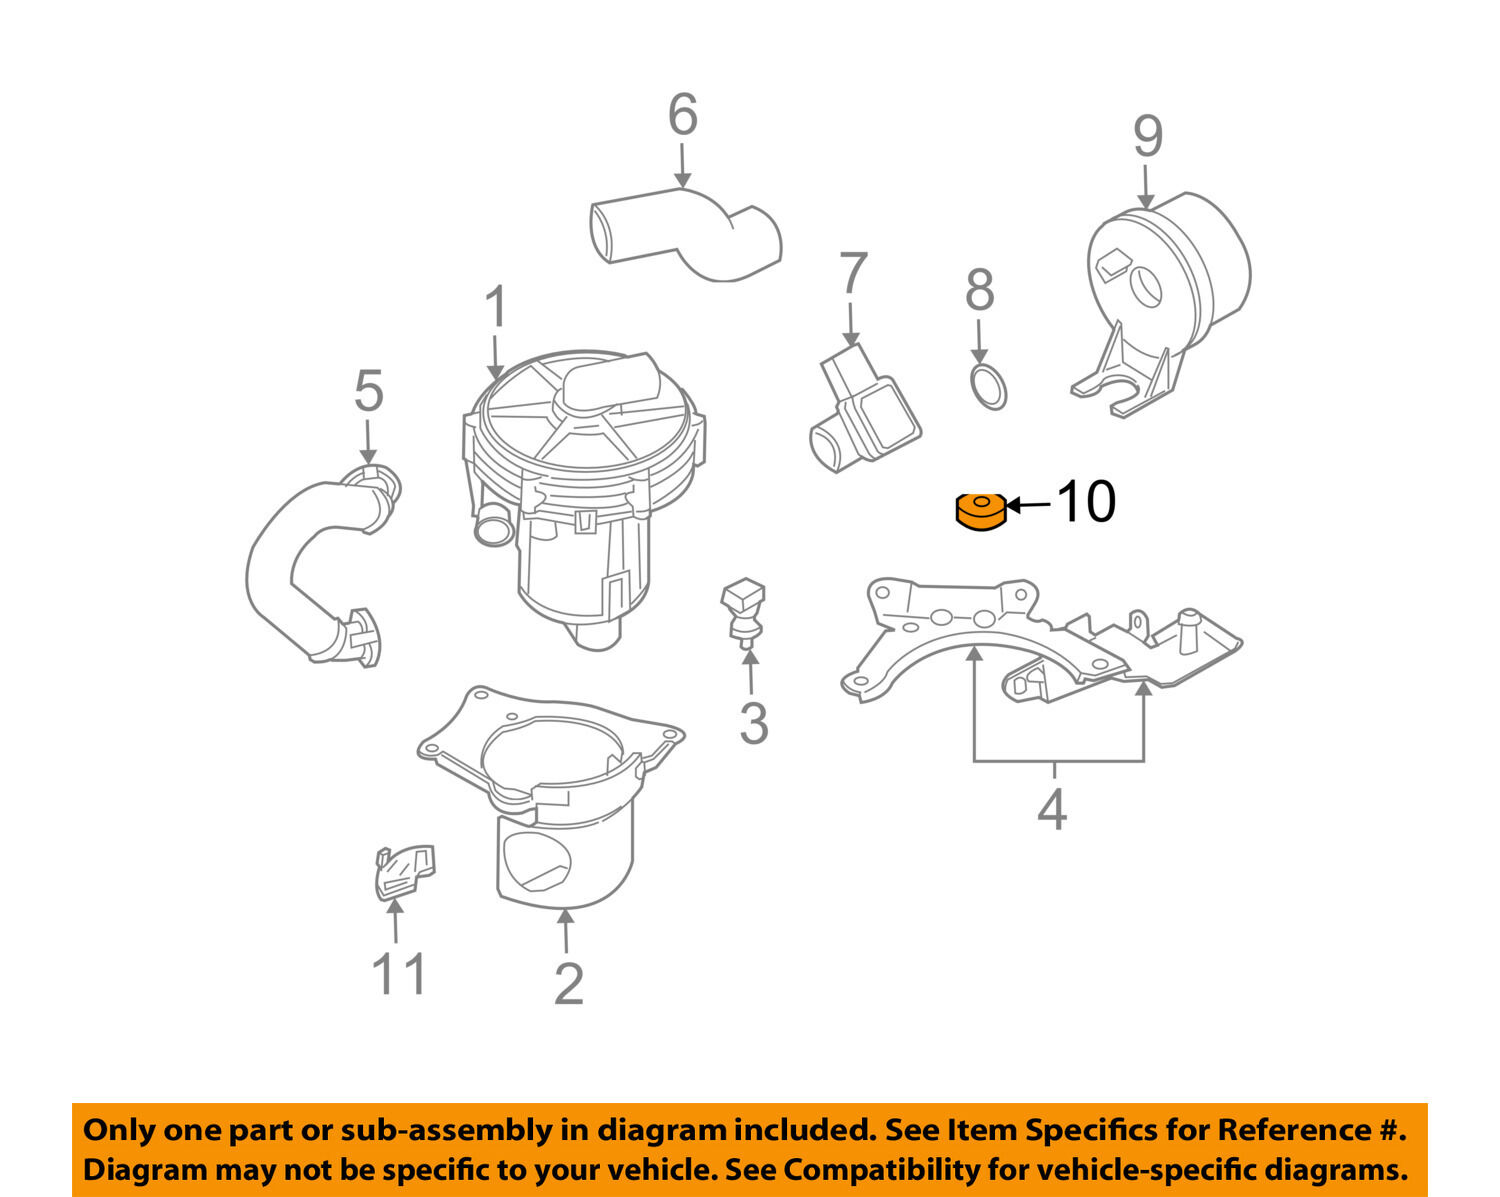 2008 Bmw 328i Exhaust Diagram Trusted Wiring Diagrams 335i E38 Engine Manifold New 2018